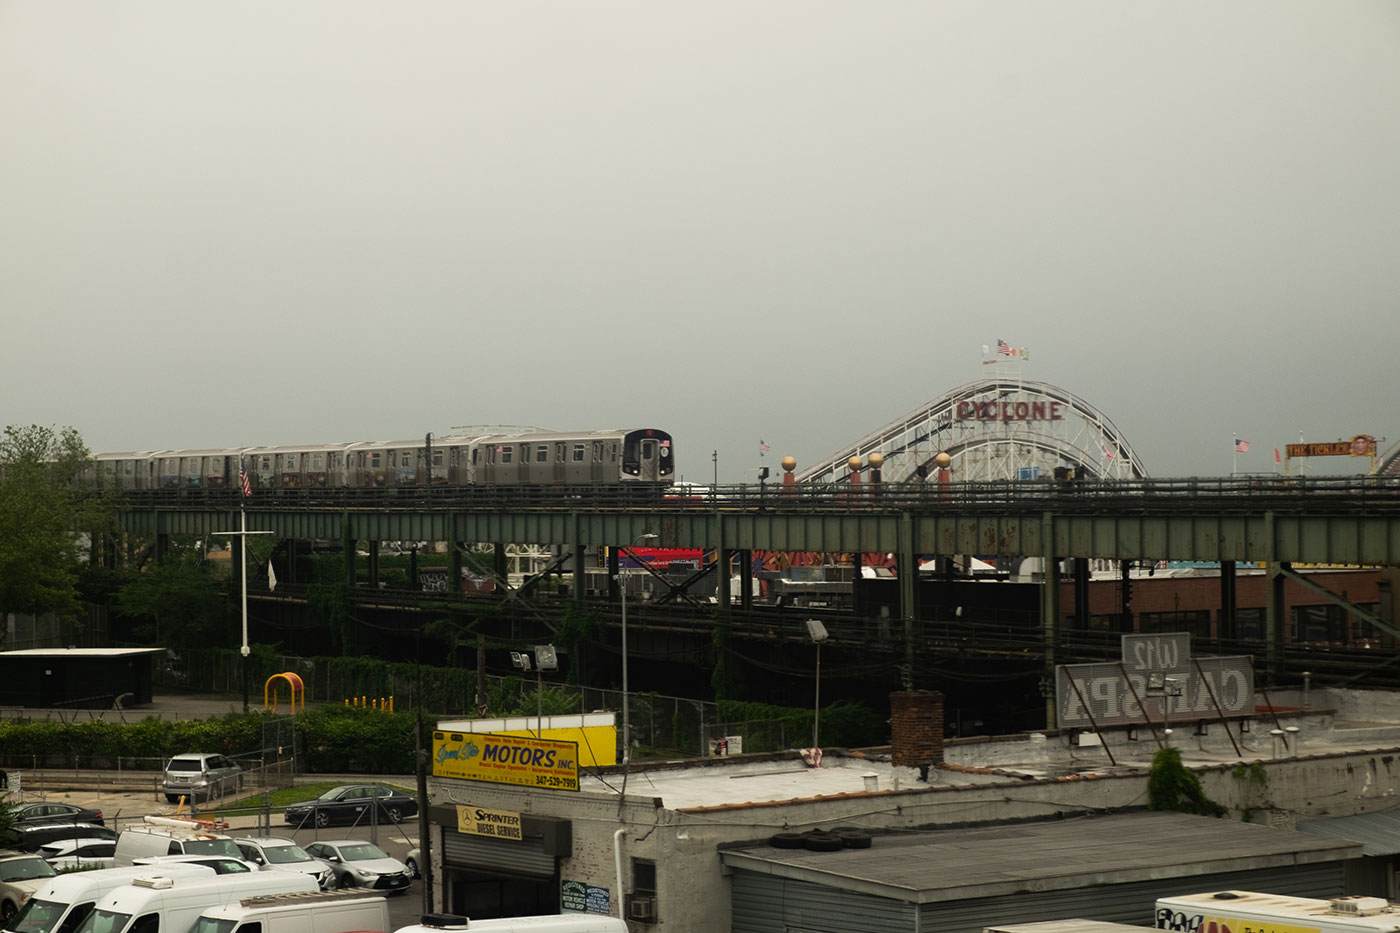 a train on an elevated rail line passes the Coney Island Cyclone